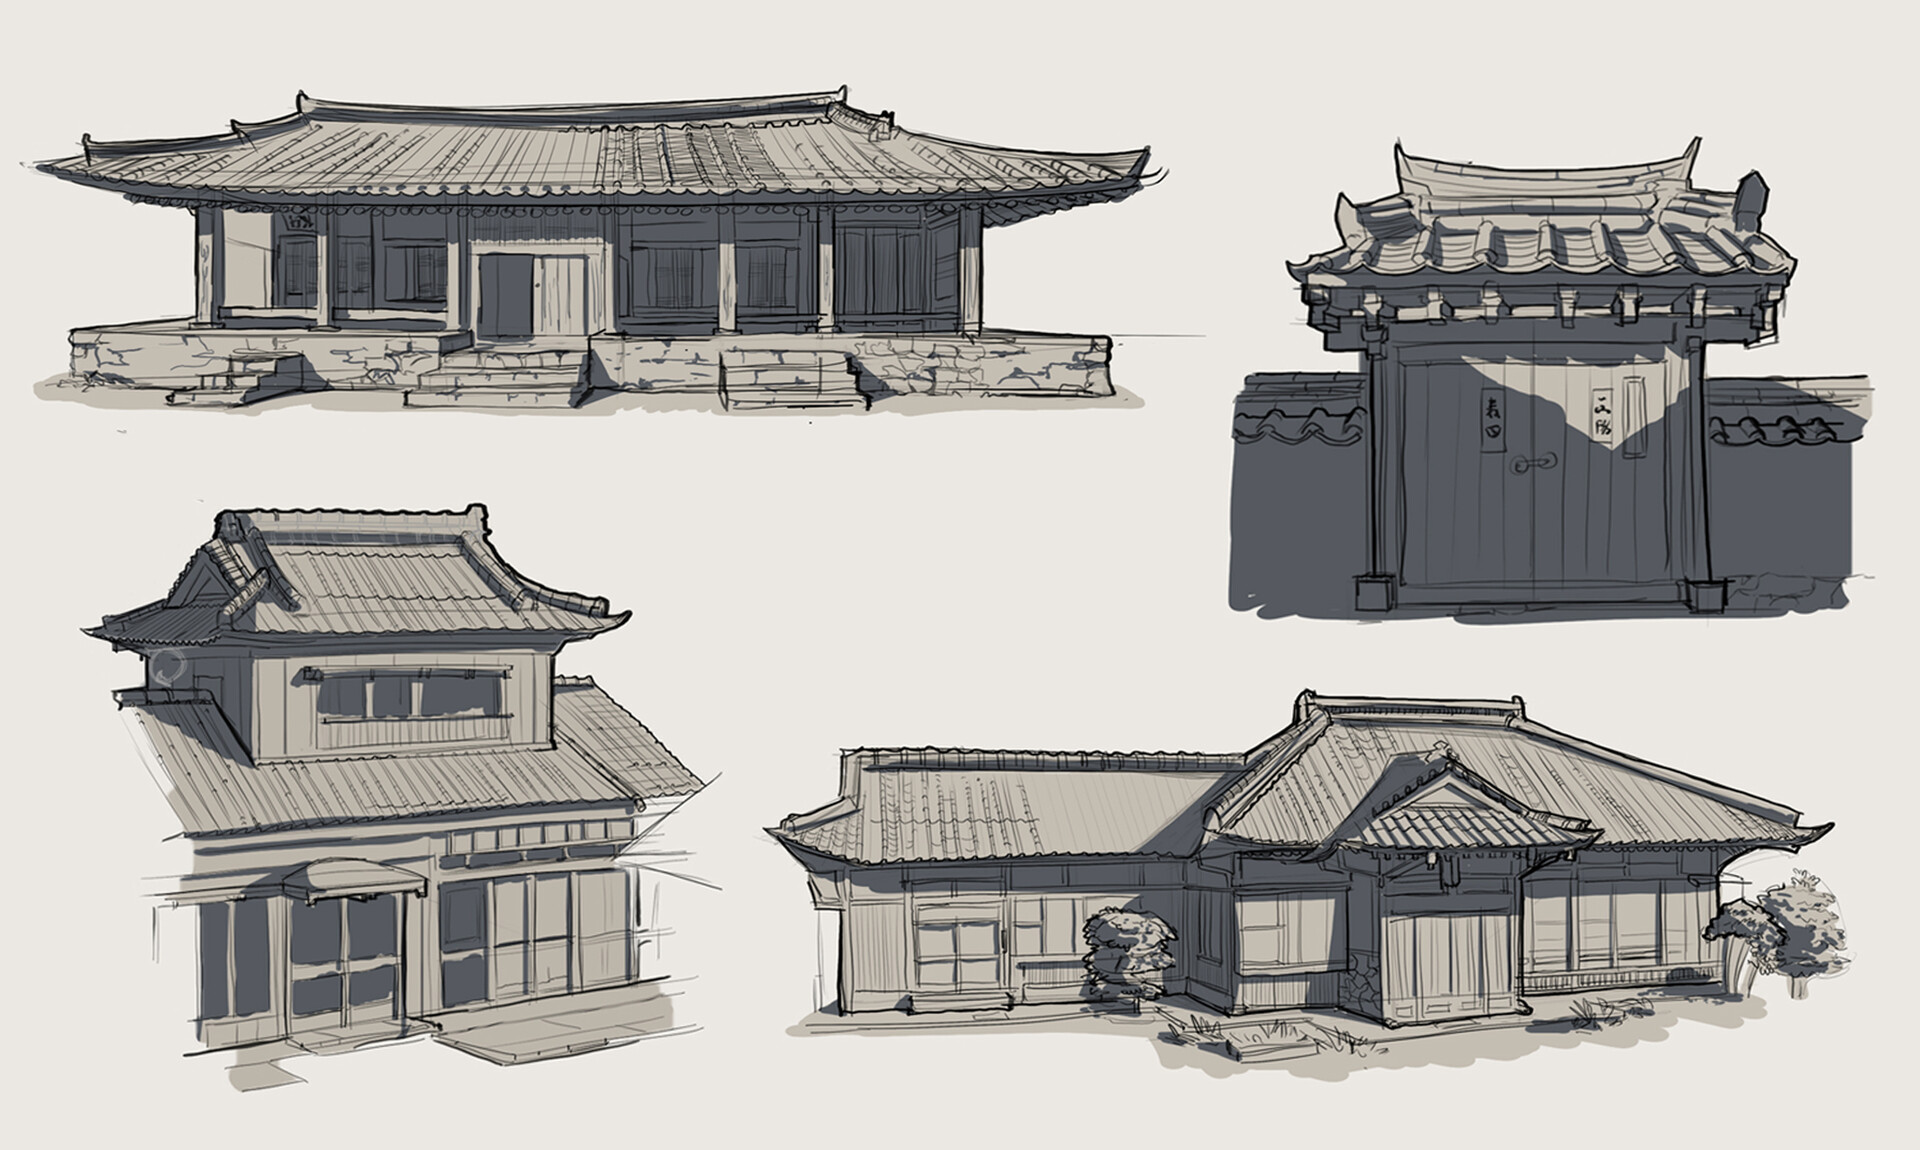 Dennis van kessel page 4 asian architecture